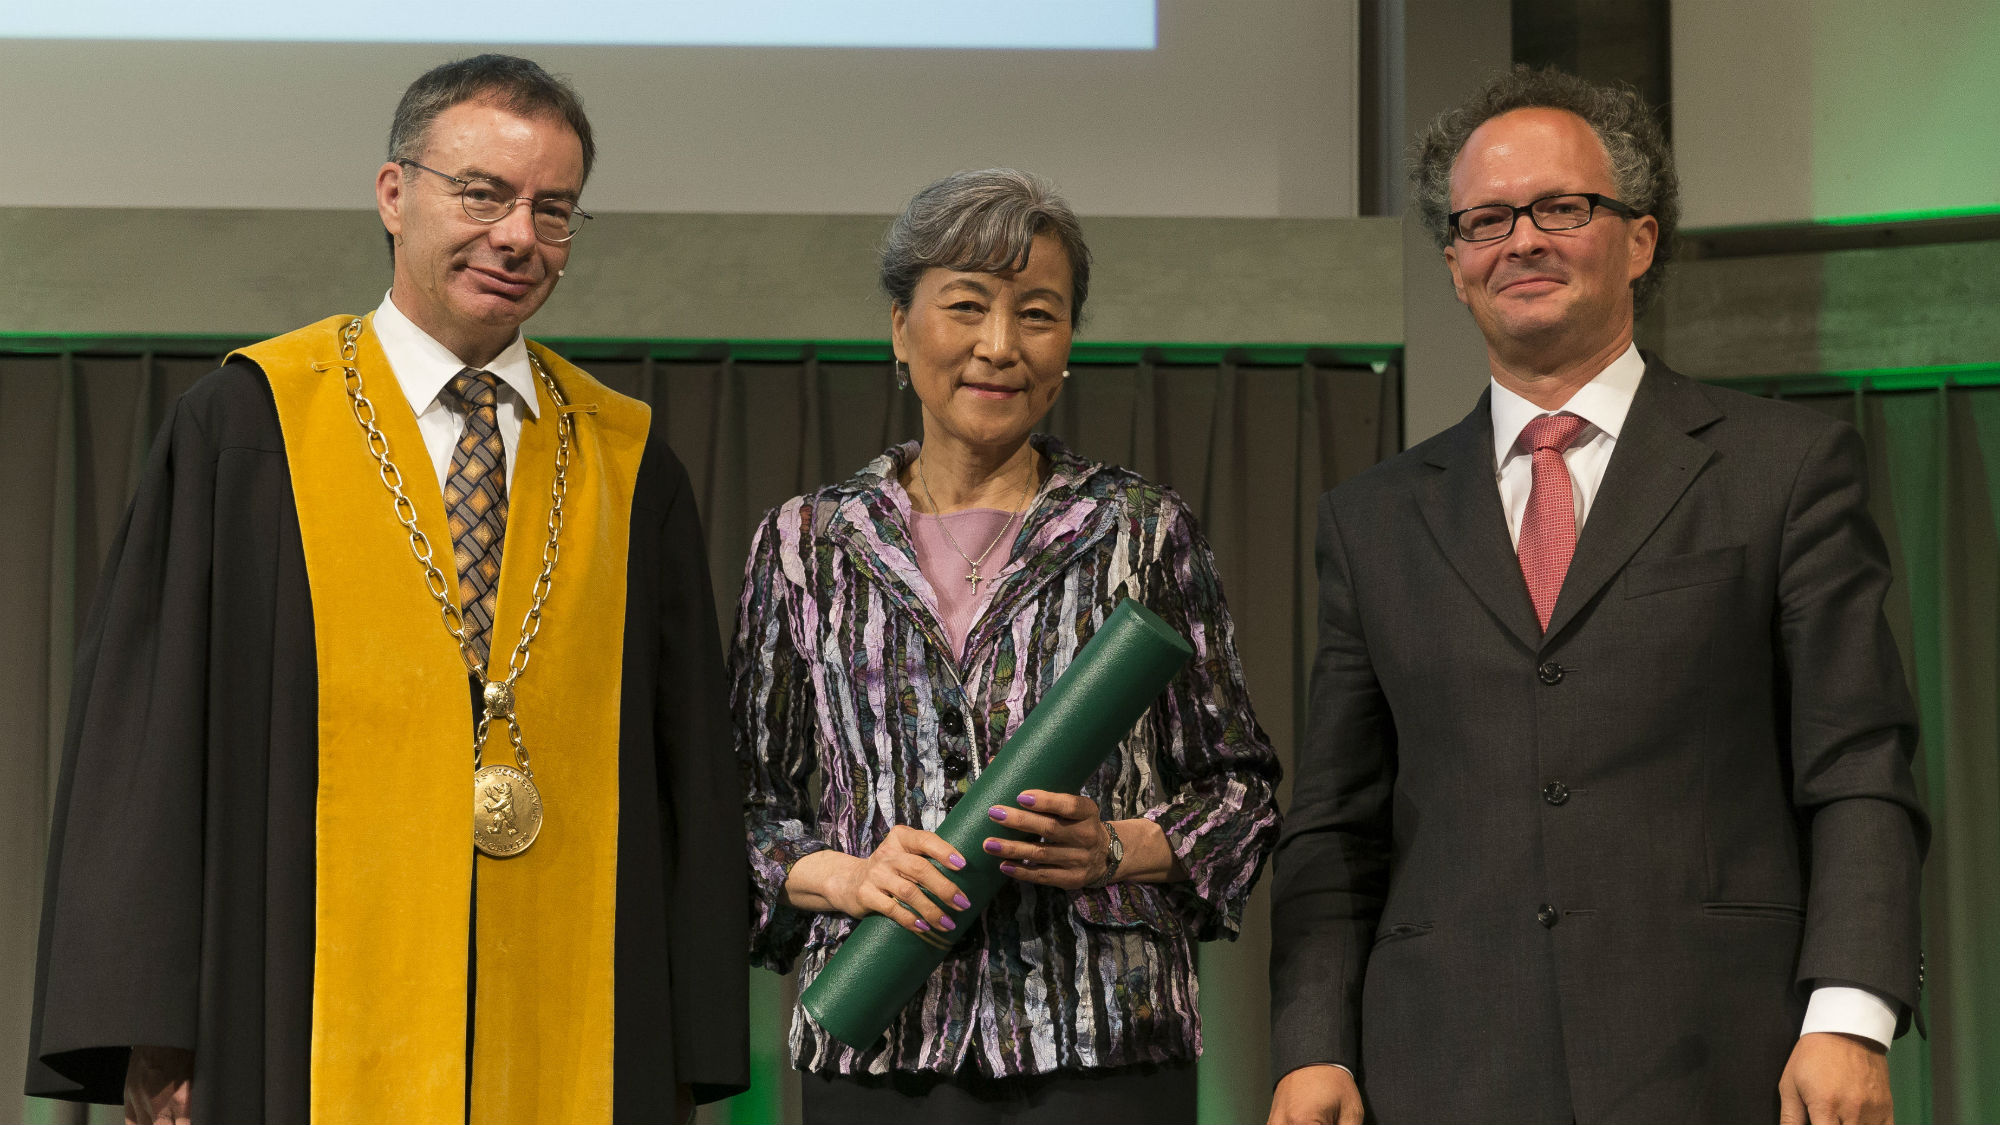 Thomas Bieger, Anne Tsui und Peter Leibfried am Dies